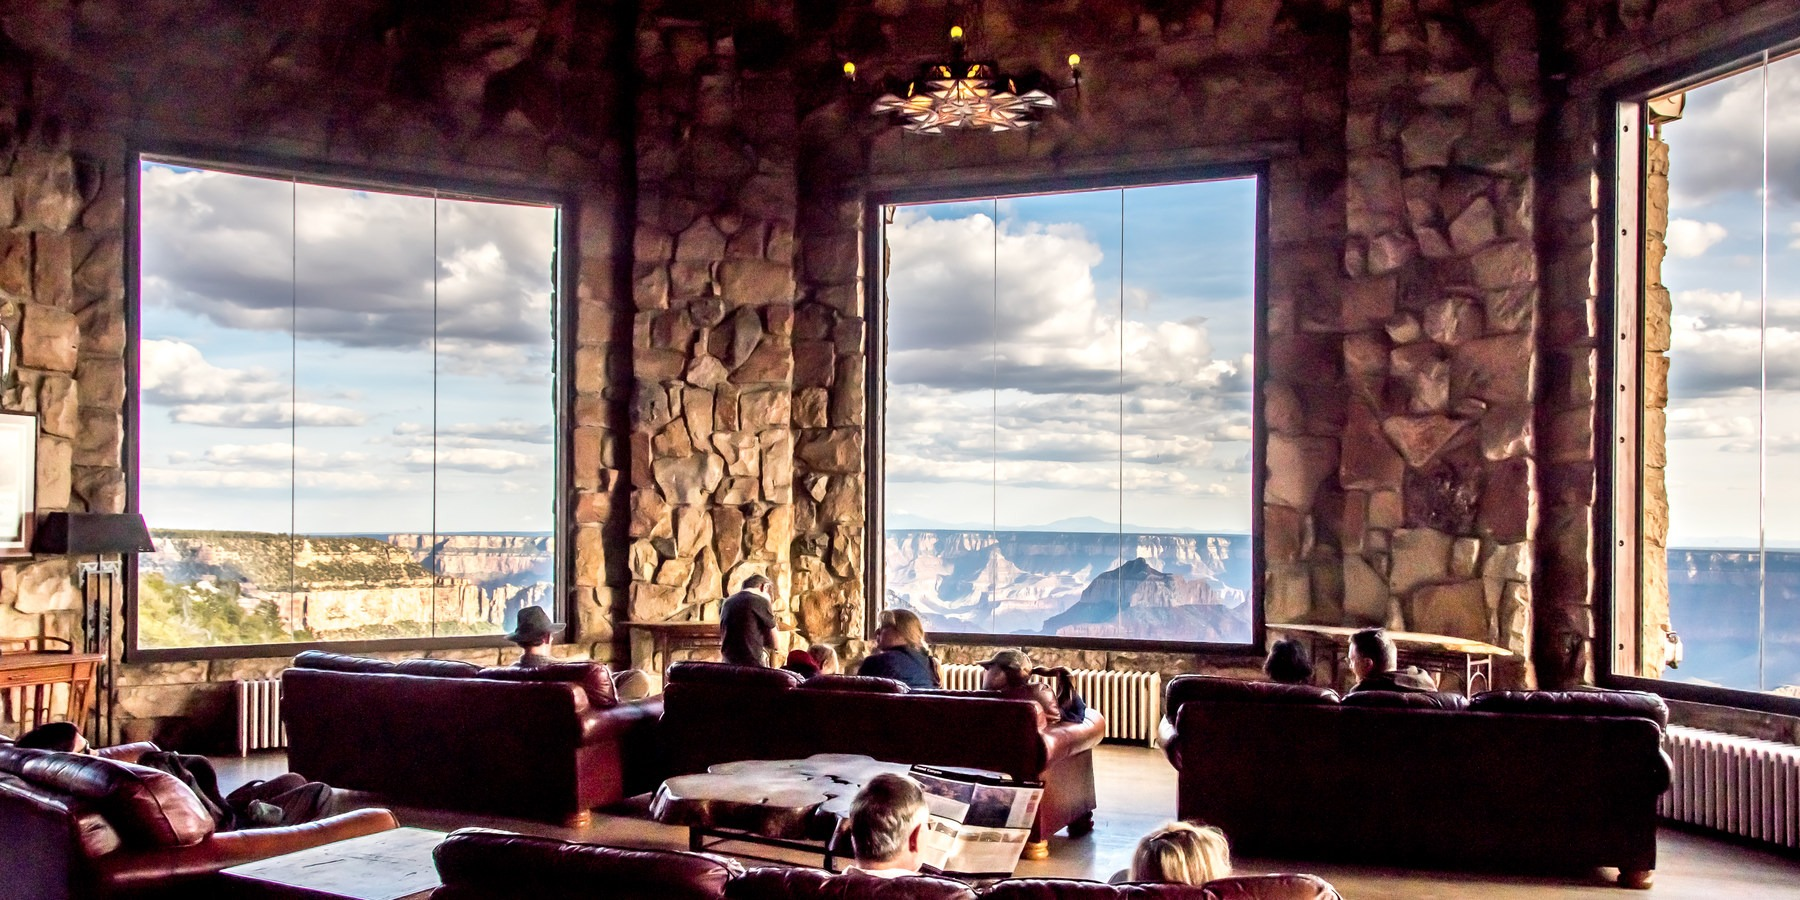 Home · Adventures · Arizona · Lodging; Grand Canyon Lodge ... Part 18